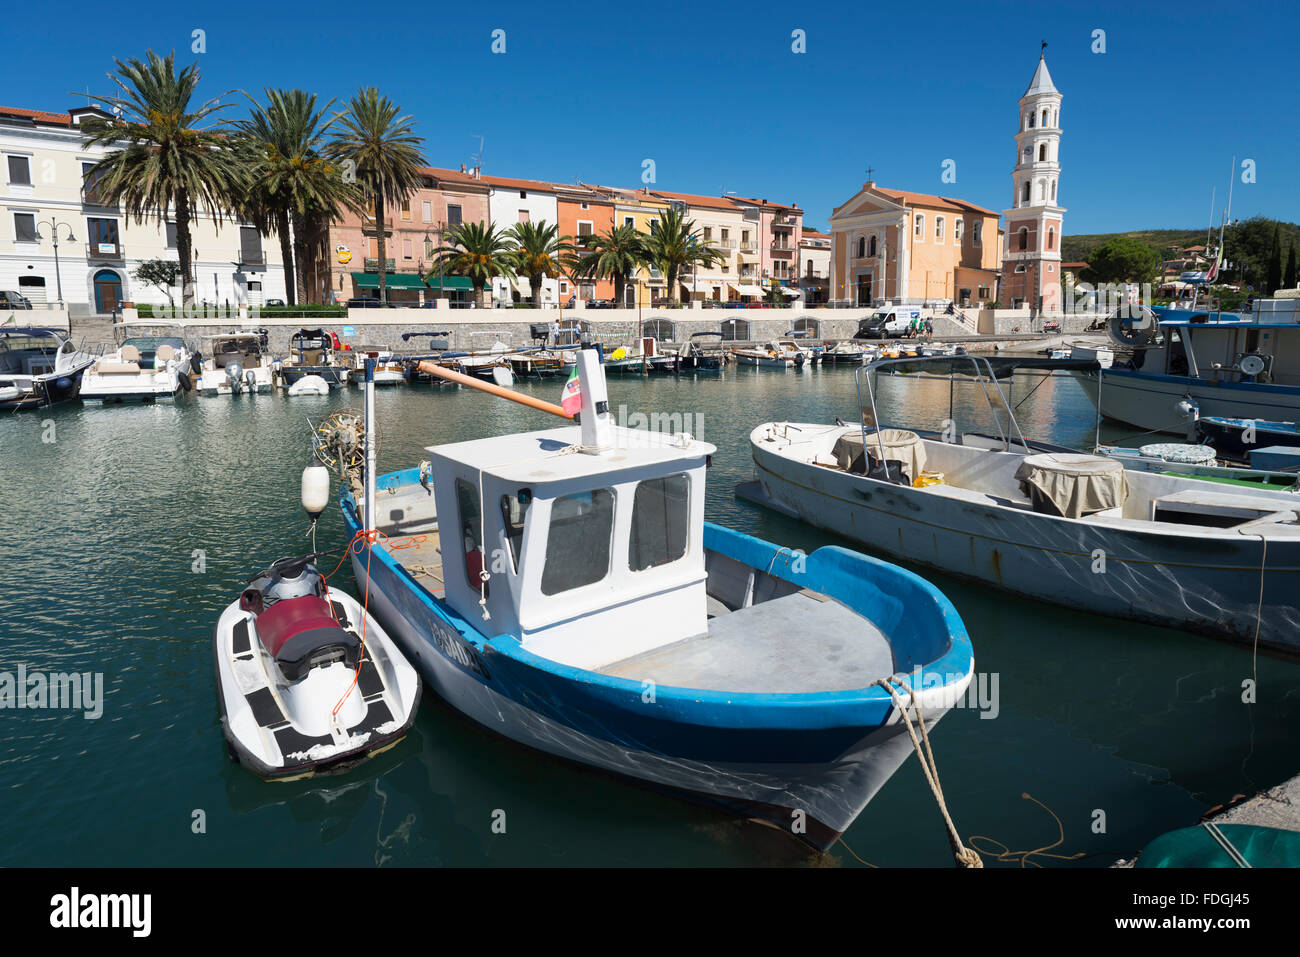 Fishing and motor boats in the picturesque harbor of Scario on the coast of the Mediterranean Sea in Cilento, Campania, - Stock Image